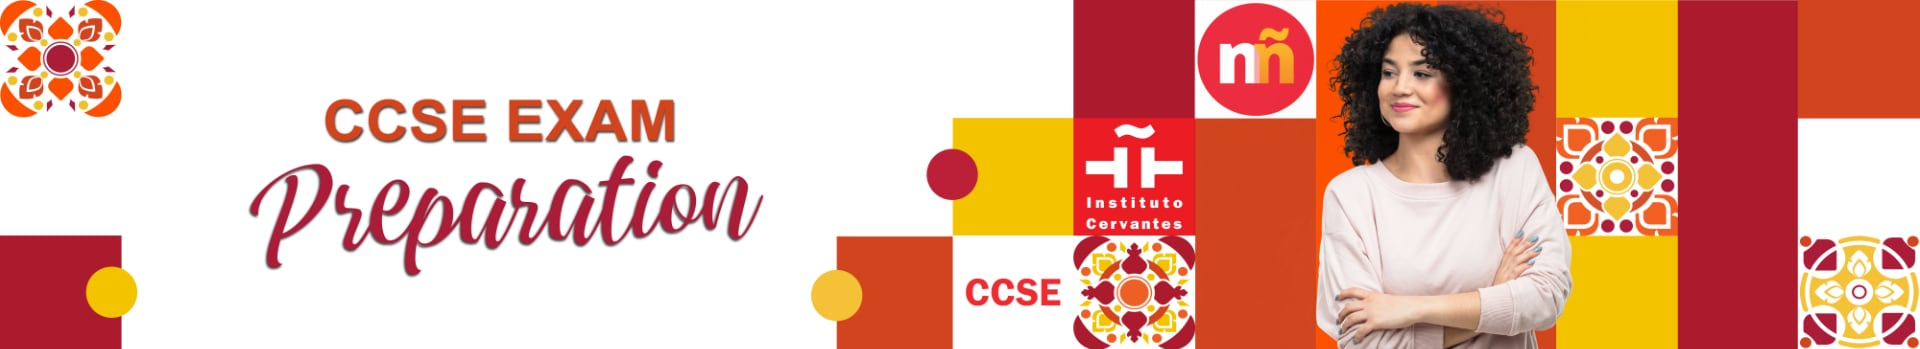 What is CCSE exam?